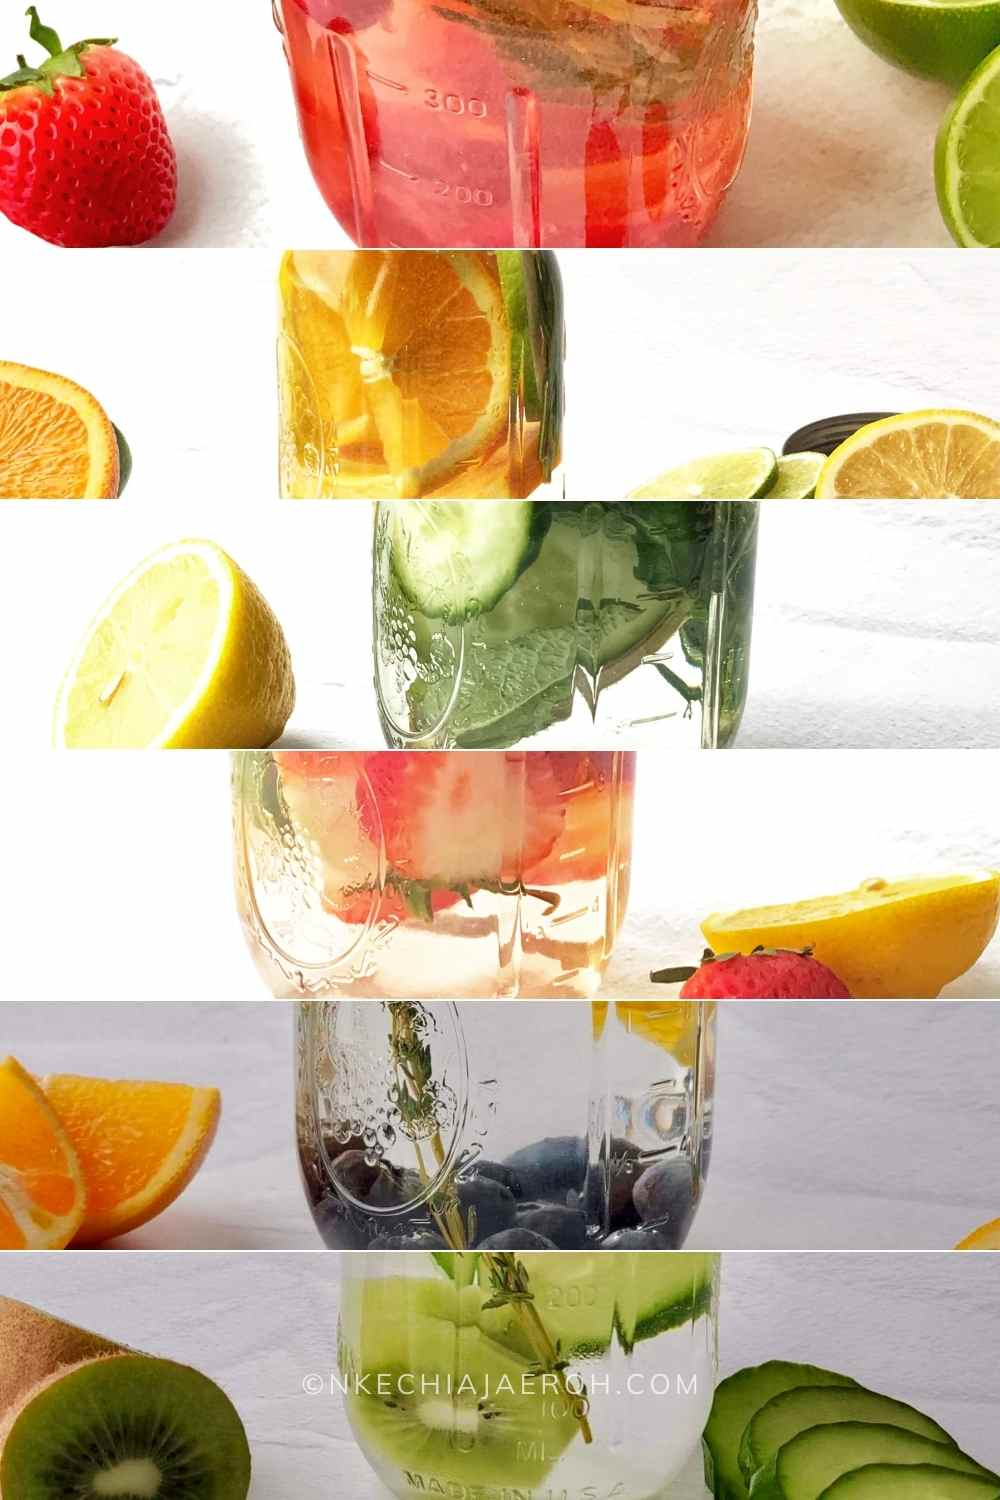 Best Infused water recipes for glowing skin Drink more water with DIY naturally flavored water, aka homemade fruit water! These fruit infused water recipes for glowing skin are health-improving, refreshing, and will surely keep you hydrated. Fruit-flavored water comes in handy during warm weather as we naturally tend to drink more water then. With these fruit water recipes, you can confidently keep the summer heat at bay and stay hydrated as you should. #Infusedwater #fruitwater #vitaminwater #DIYfruitinfusedwater #detoxwater #Strawberrywater #cucumberwater #citruswater